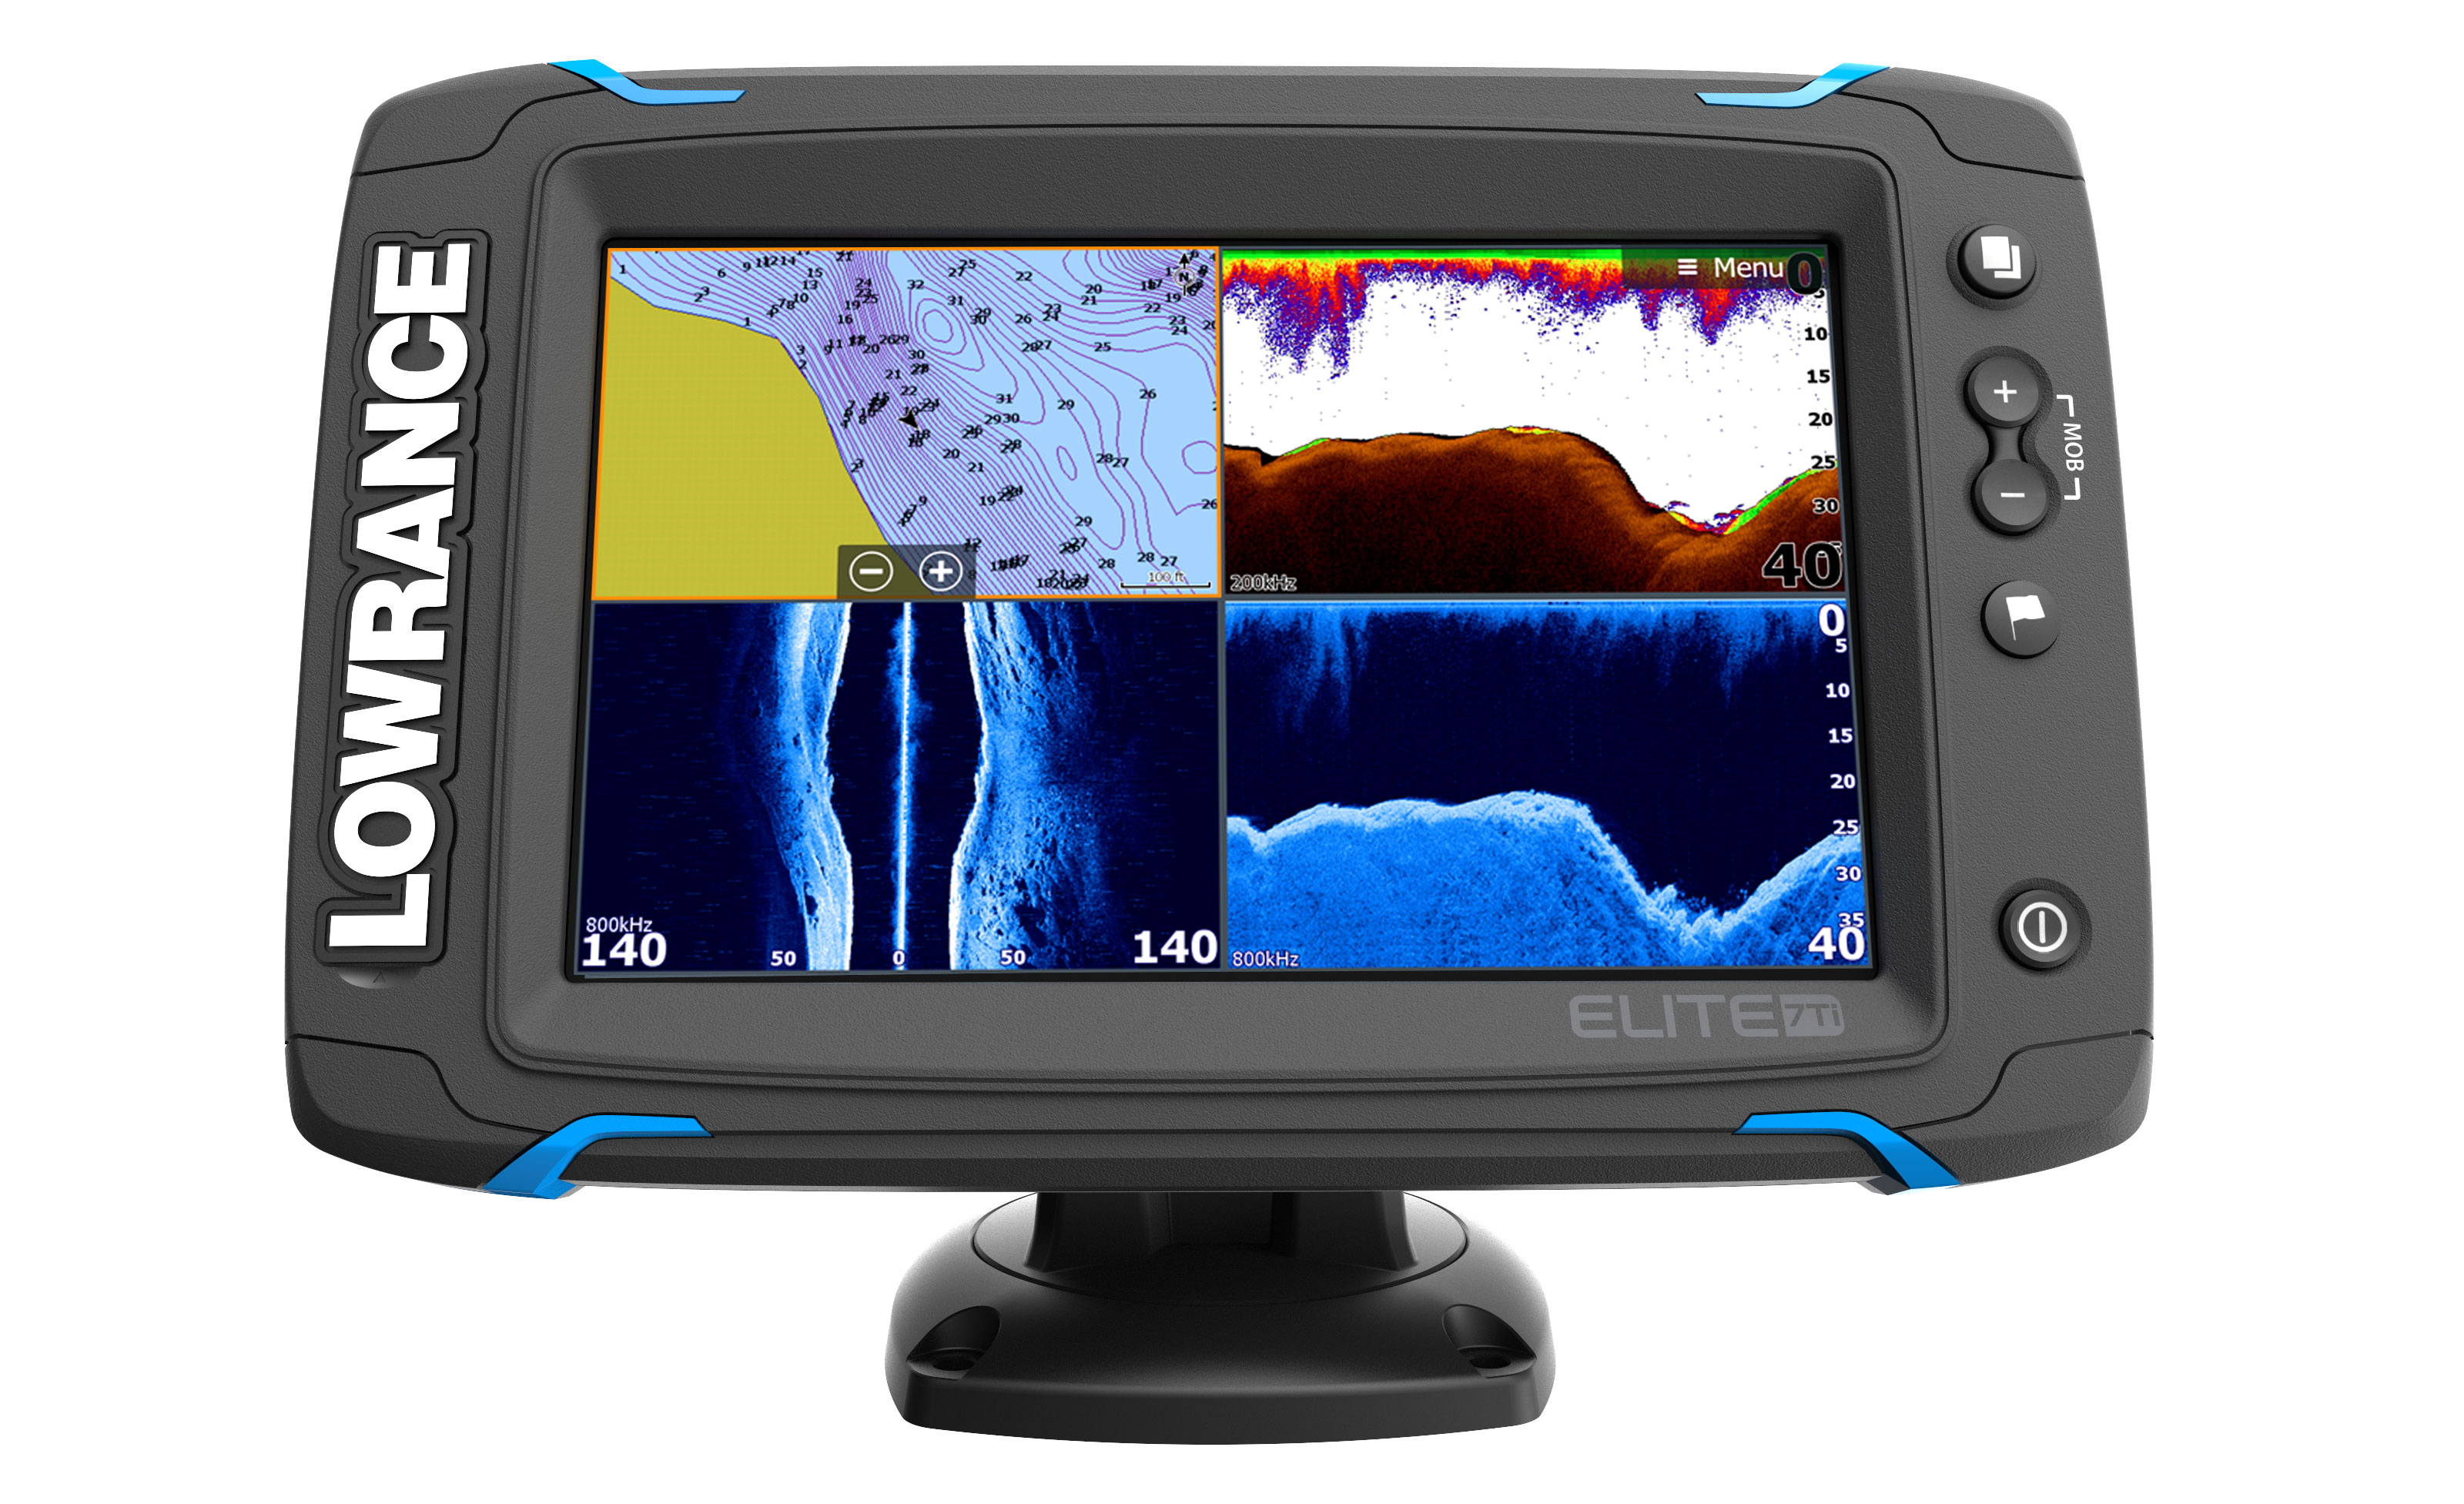 lowrance elite 7 ti gps fishfinder front view